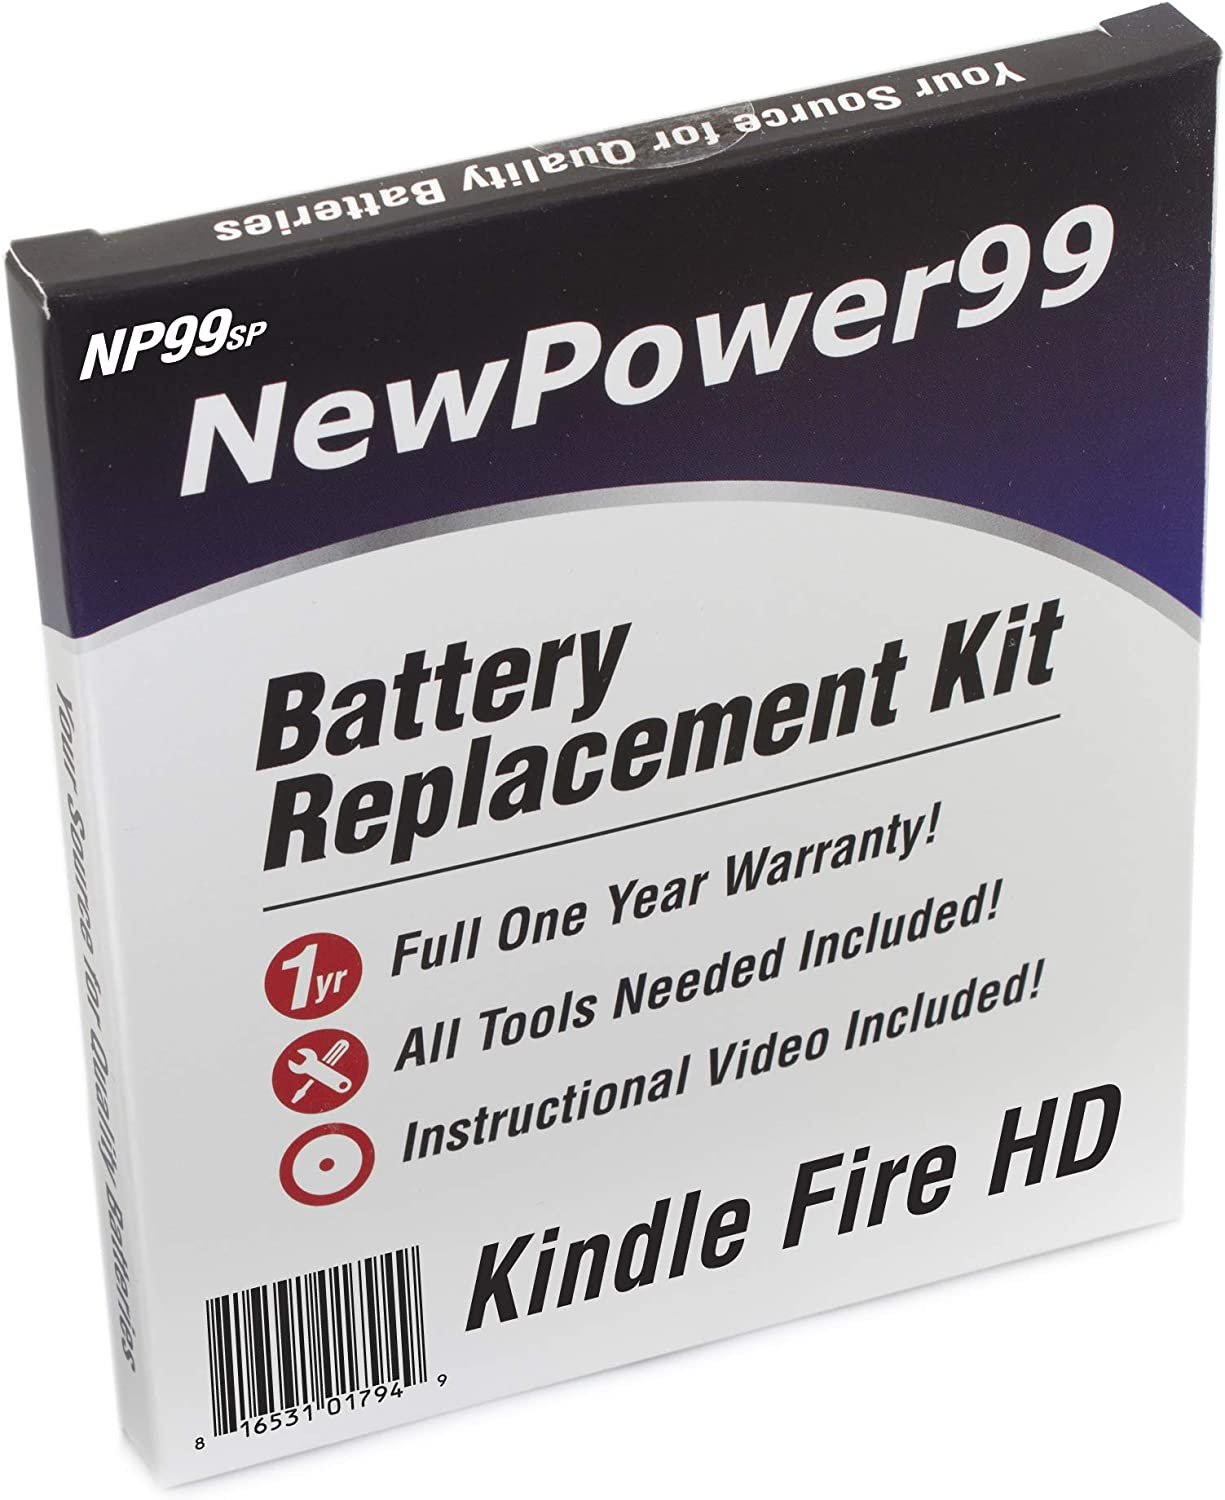 Kindle Fire HD Battery Replacement Kit with Video Amazon.in ...